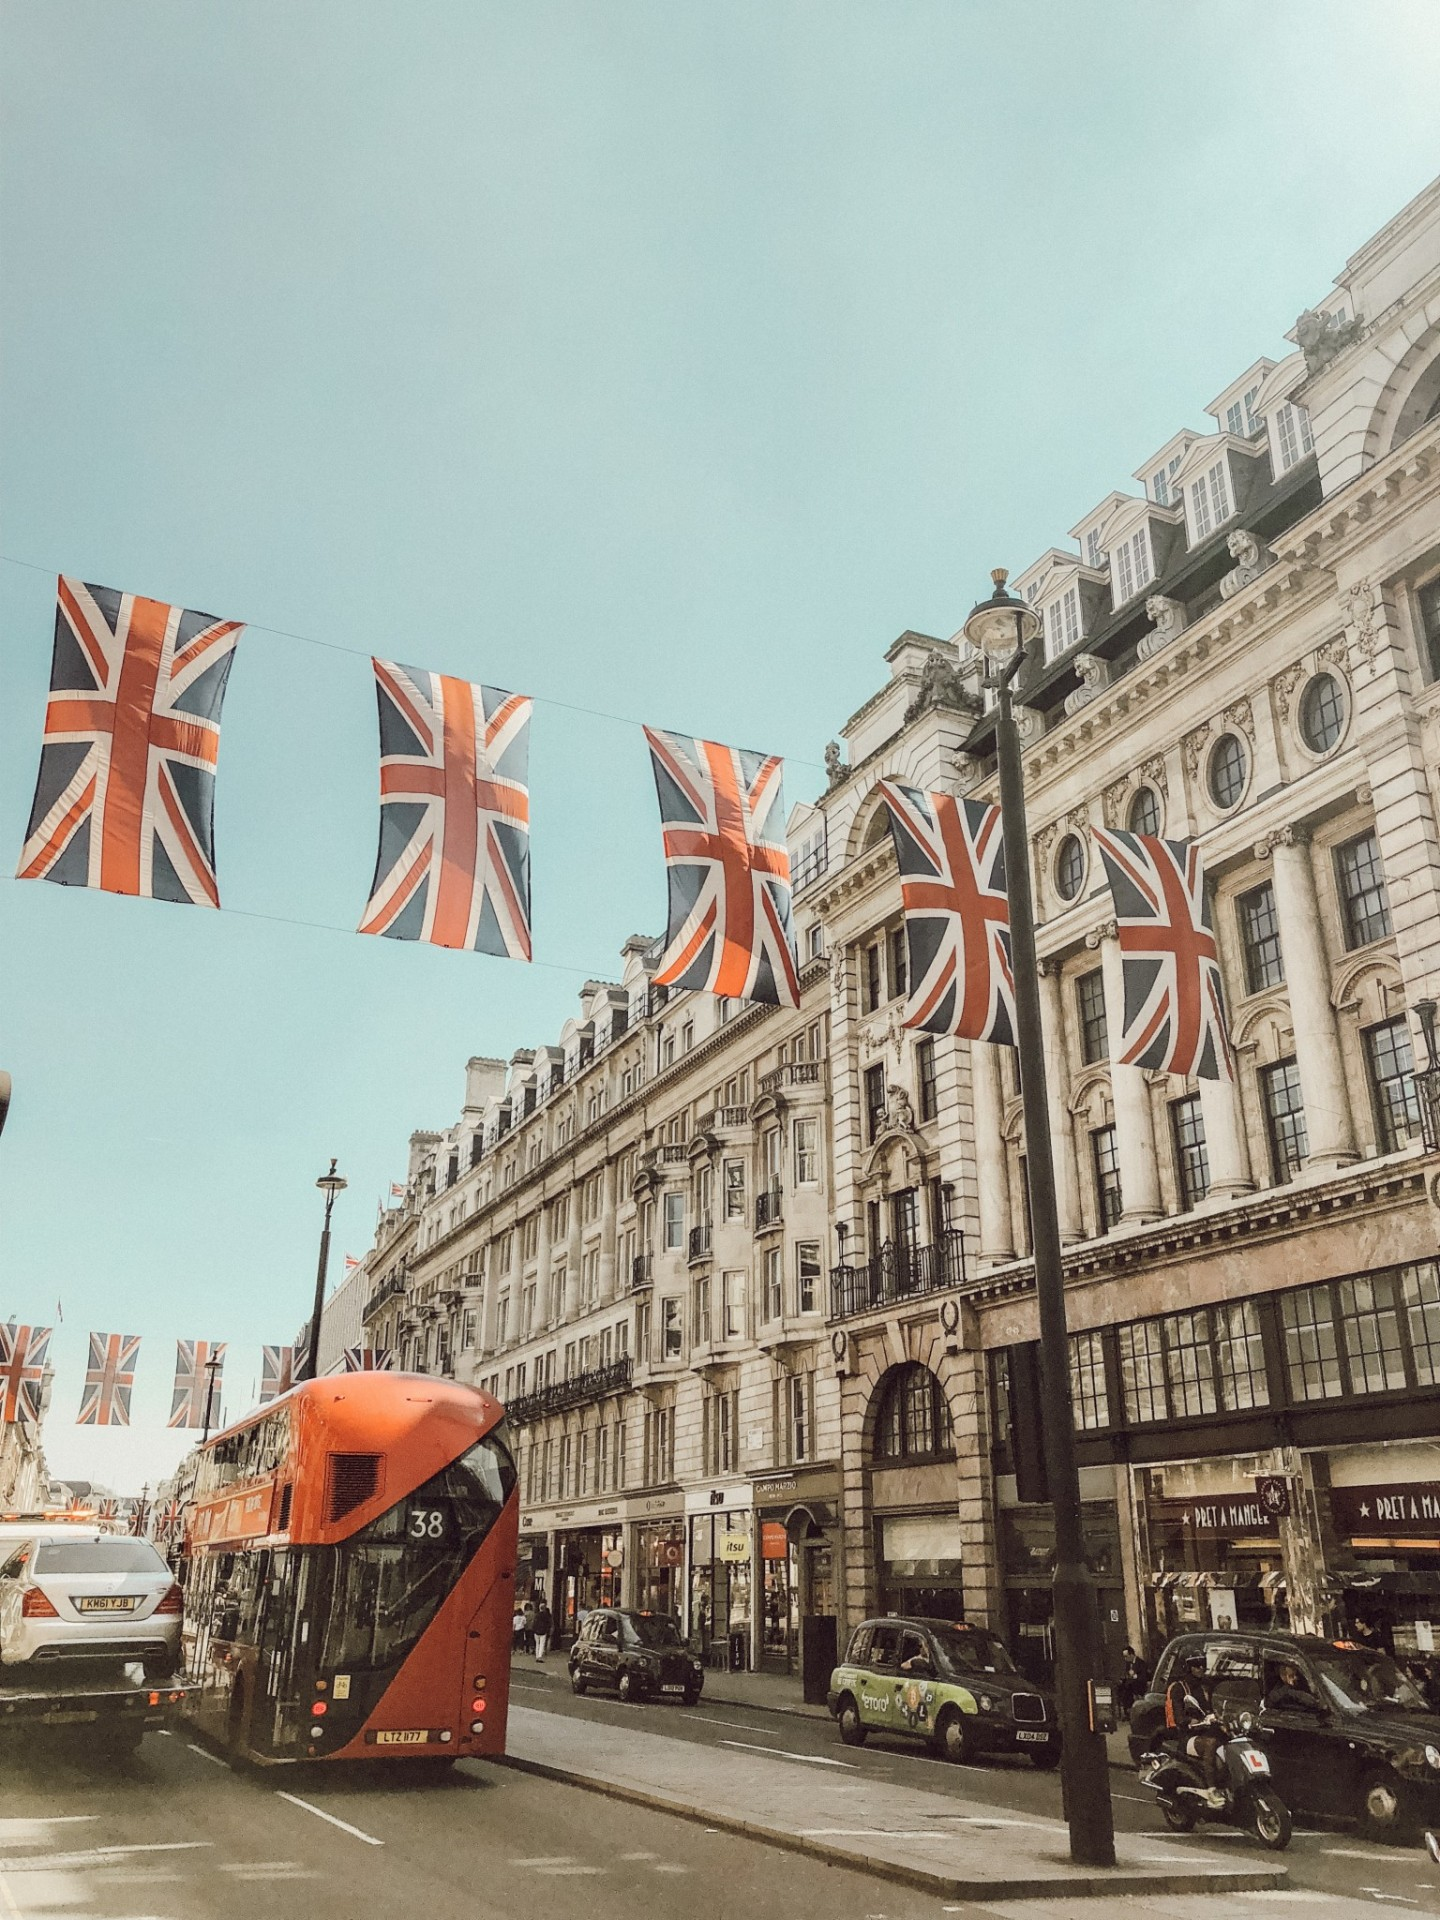 Popular London lifestyle blogger Mollie Moore shares how to make a new city feel like her home in her series American Expat Diaries